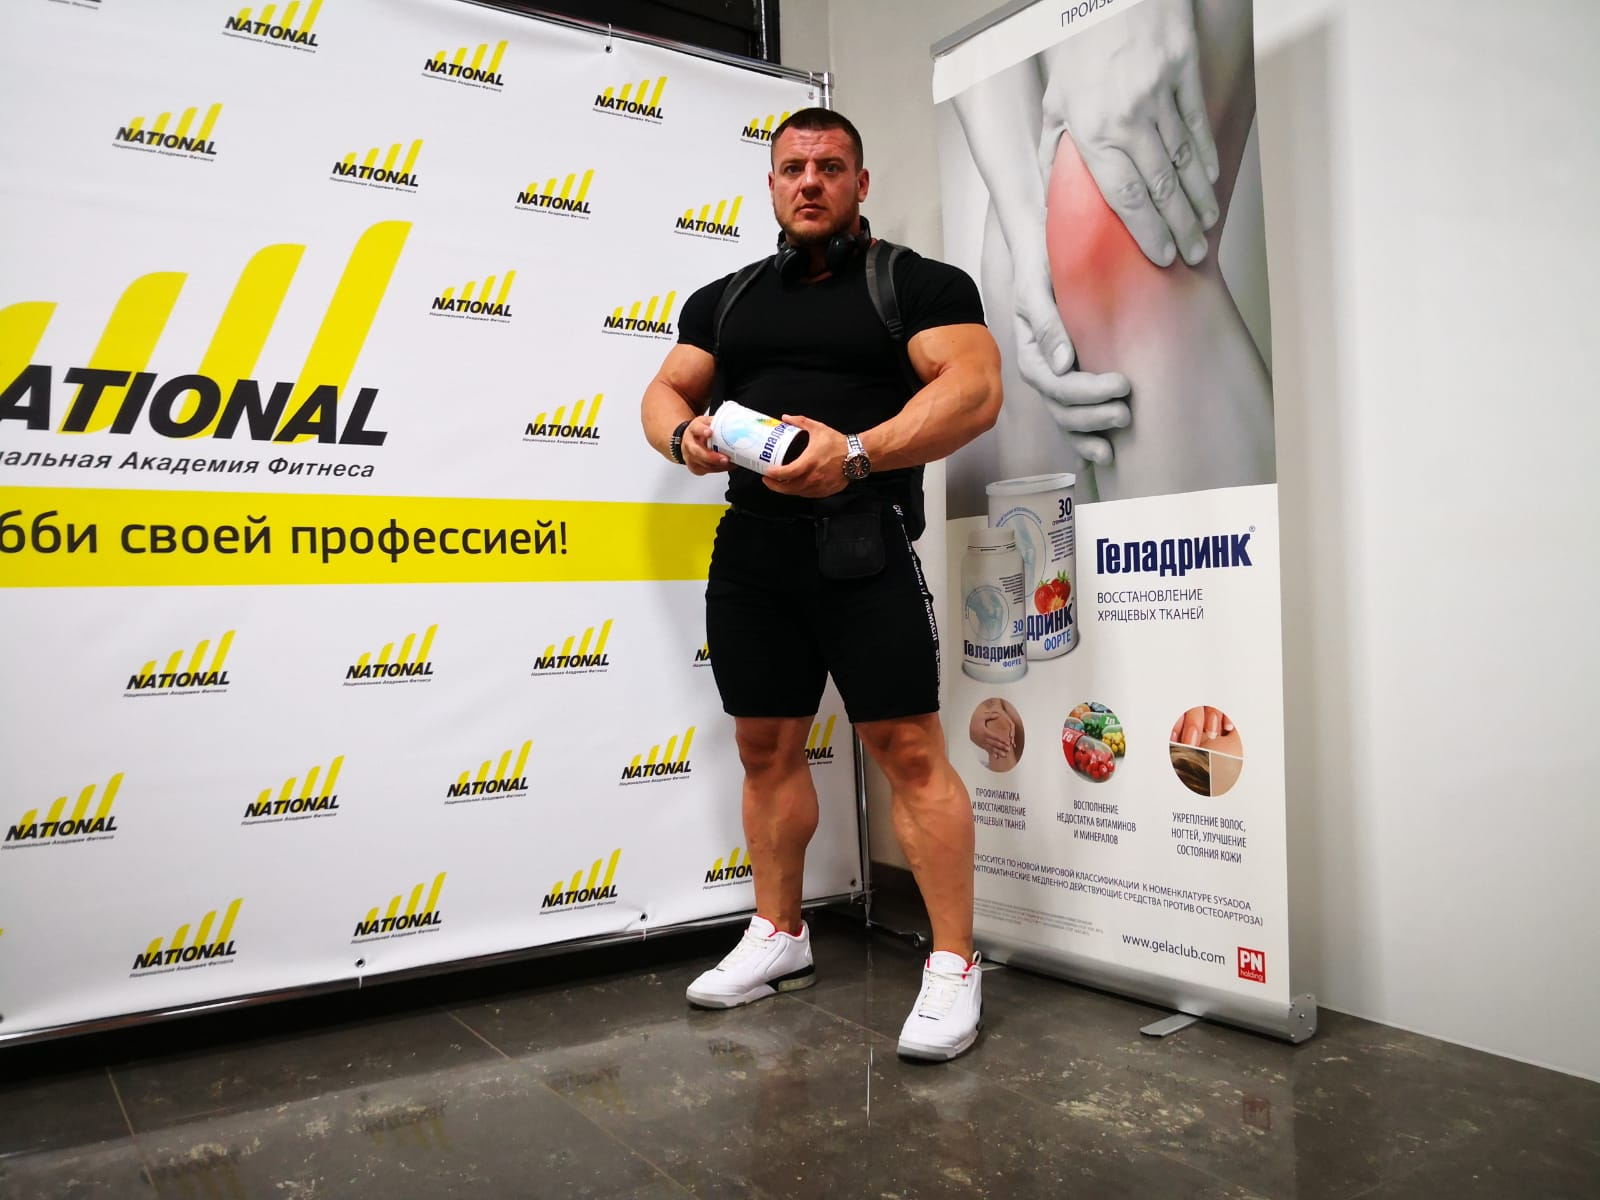 Of the 28th of July Adam Abakarov hold a seminar in Minsk sponsored by PN Holding and Geladrink®